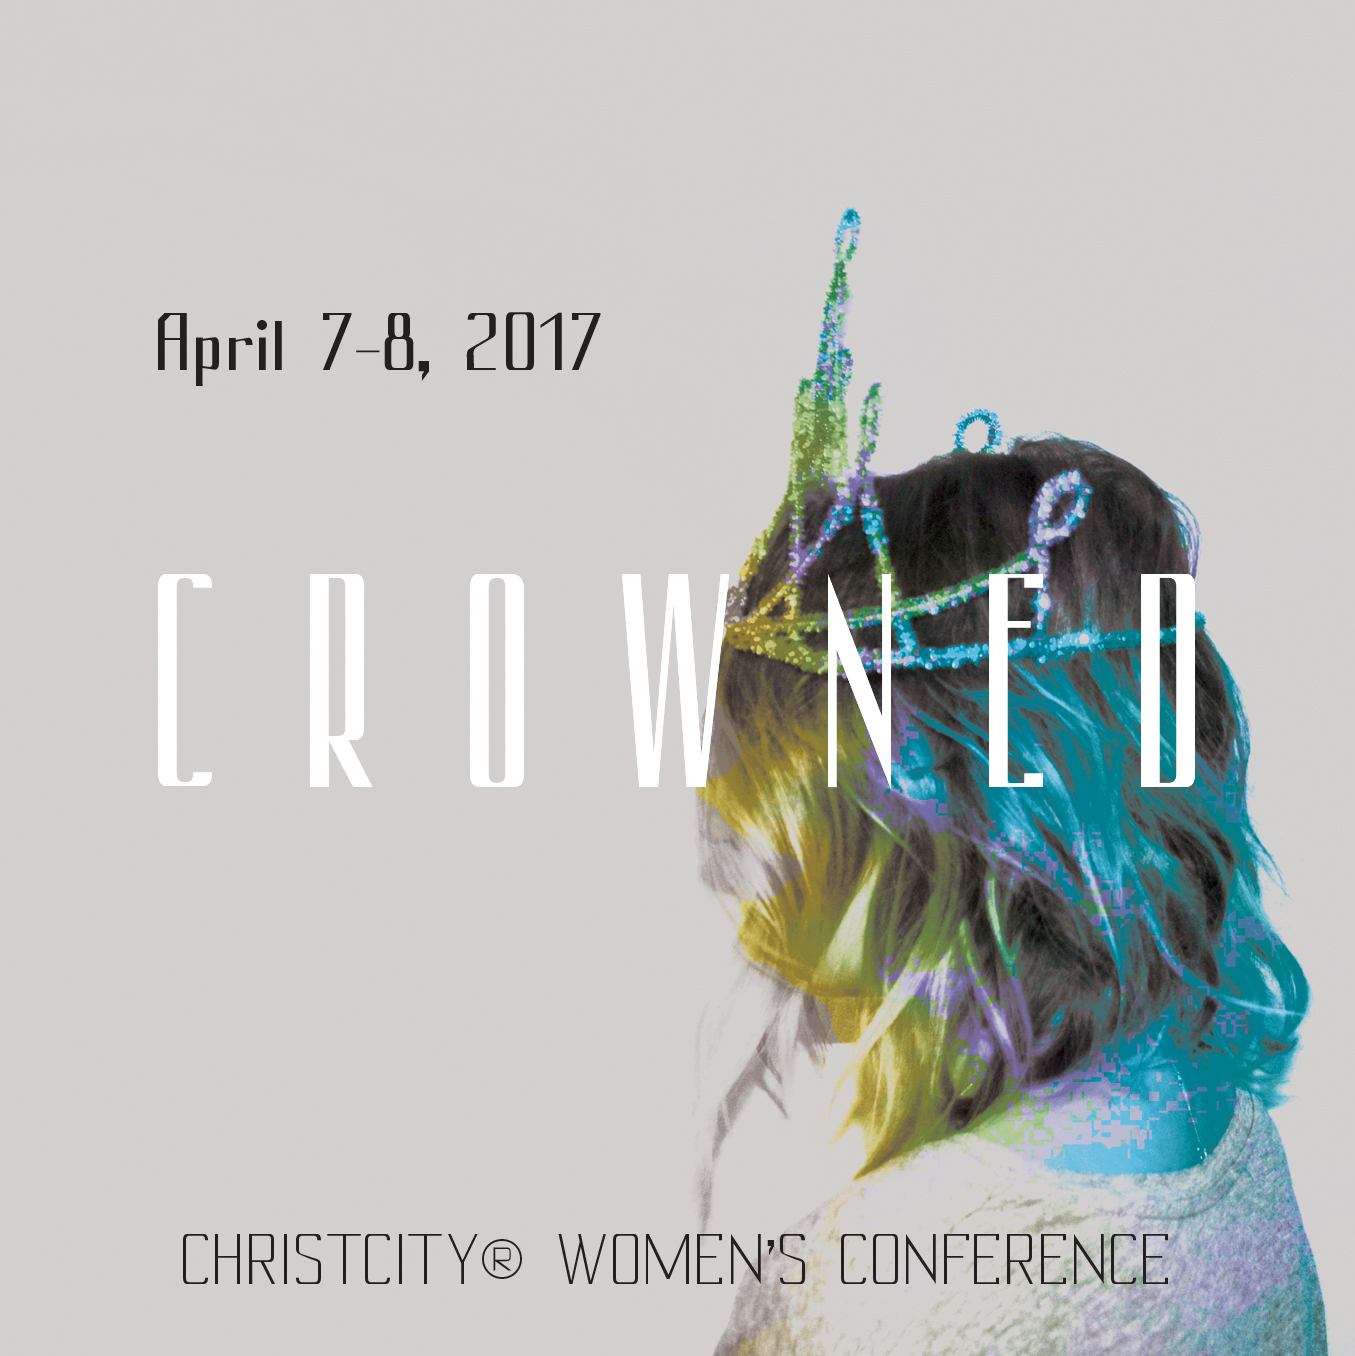 Christcity Women's Conference